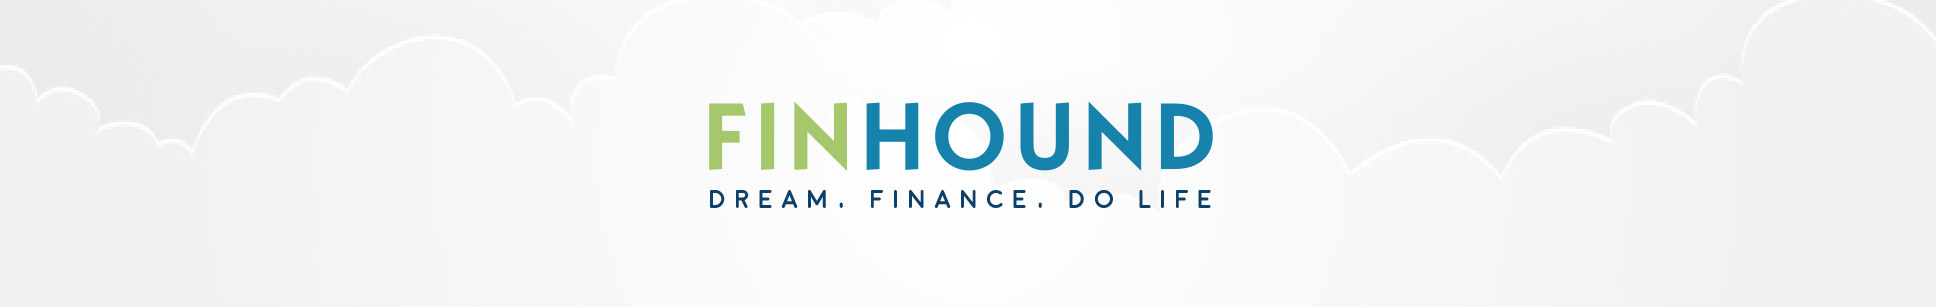 FinHound Logo - Dream, Finance, Do Life | FinHound